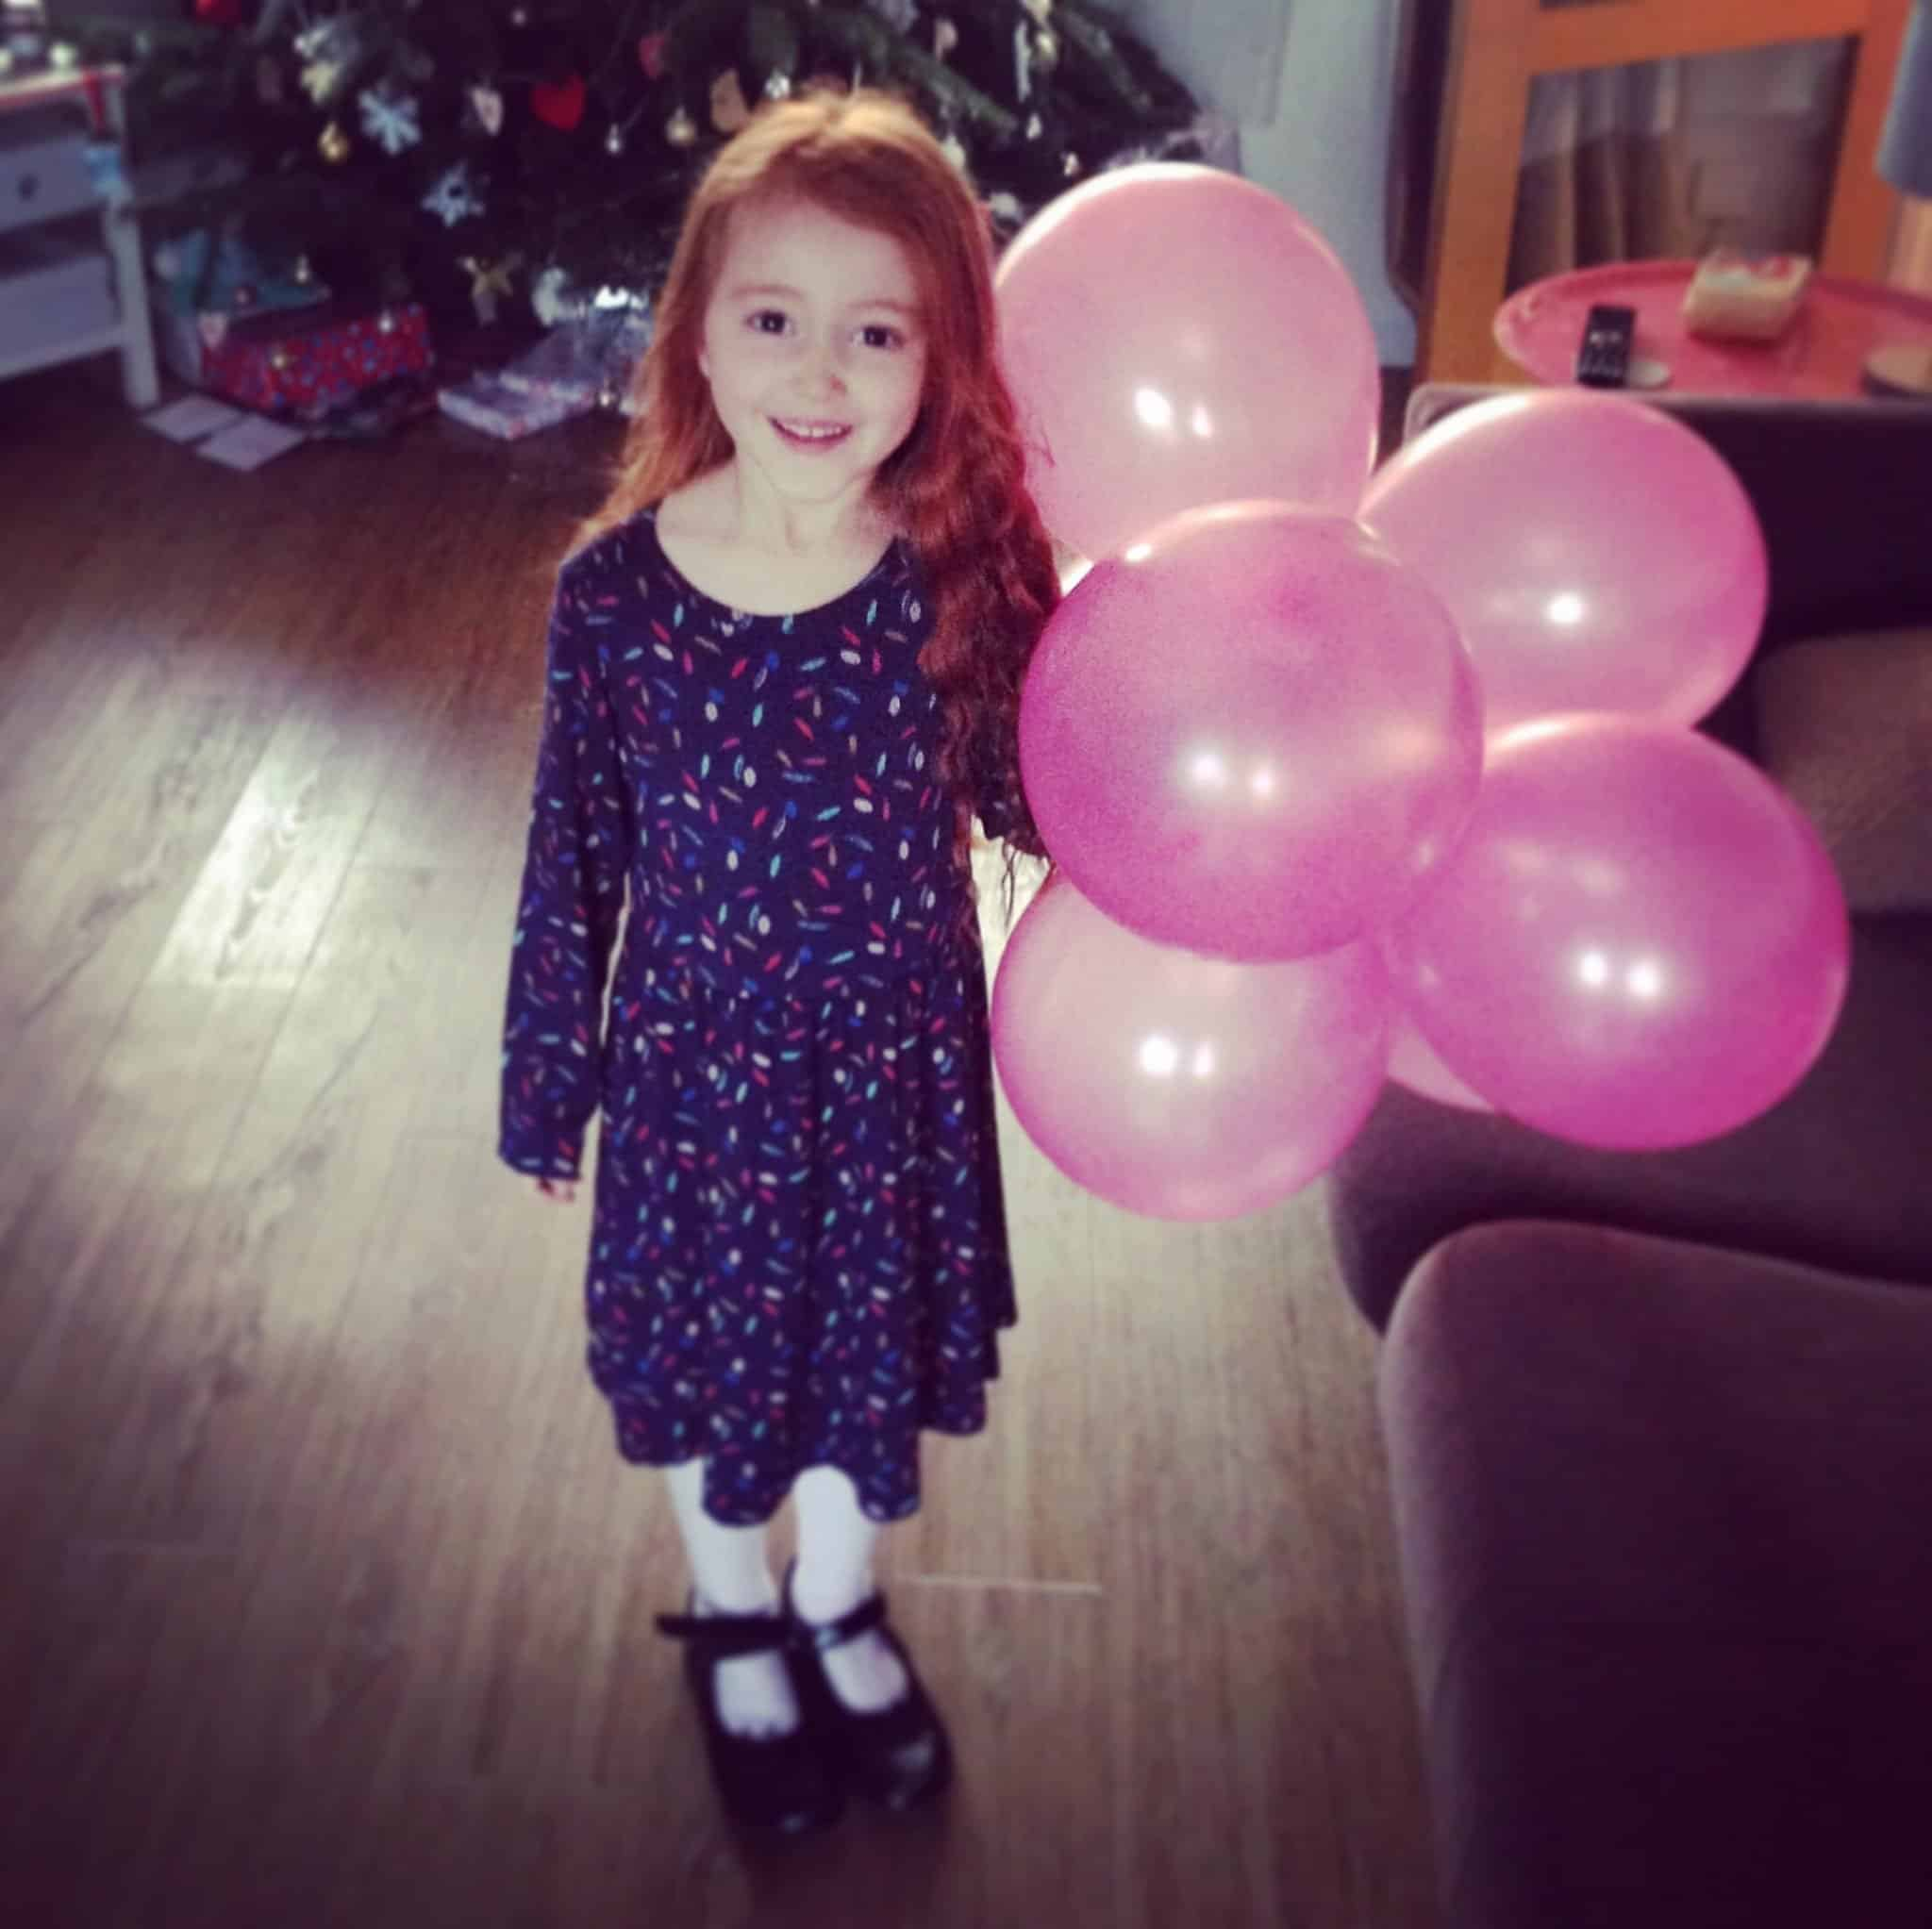 Ava before her 5th birthday party